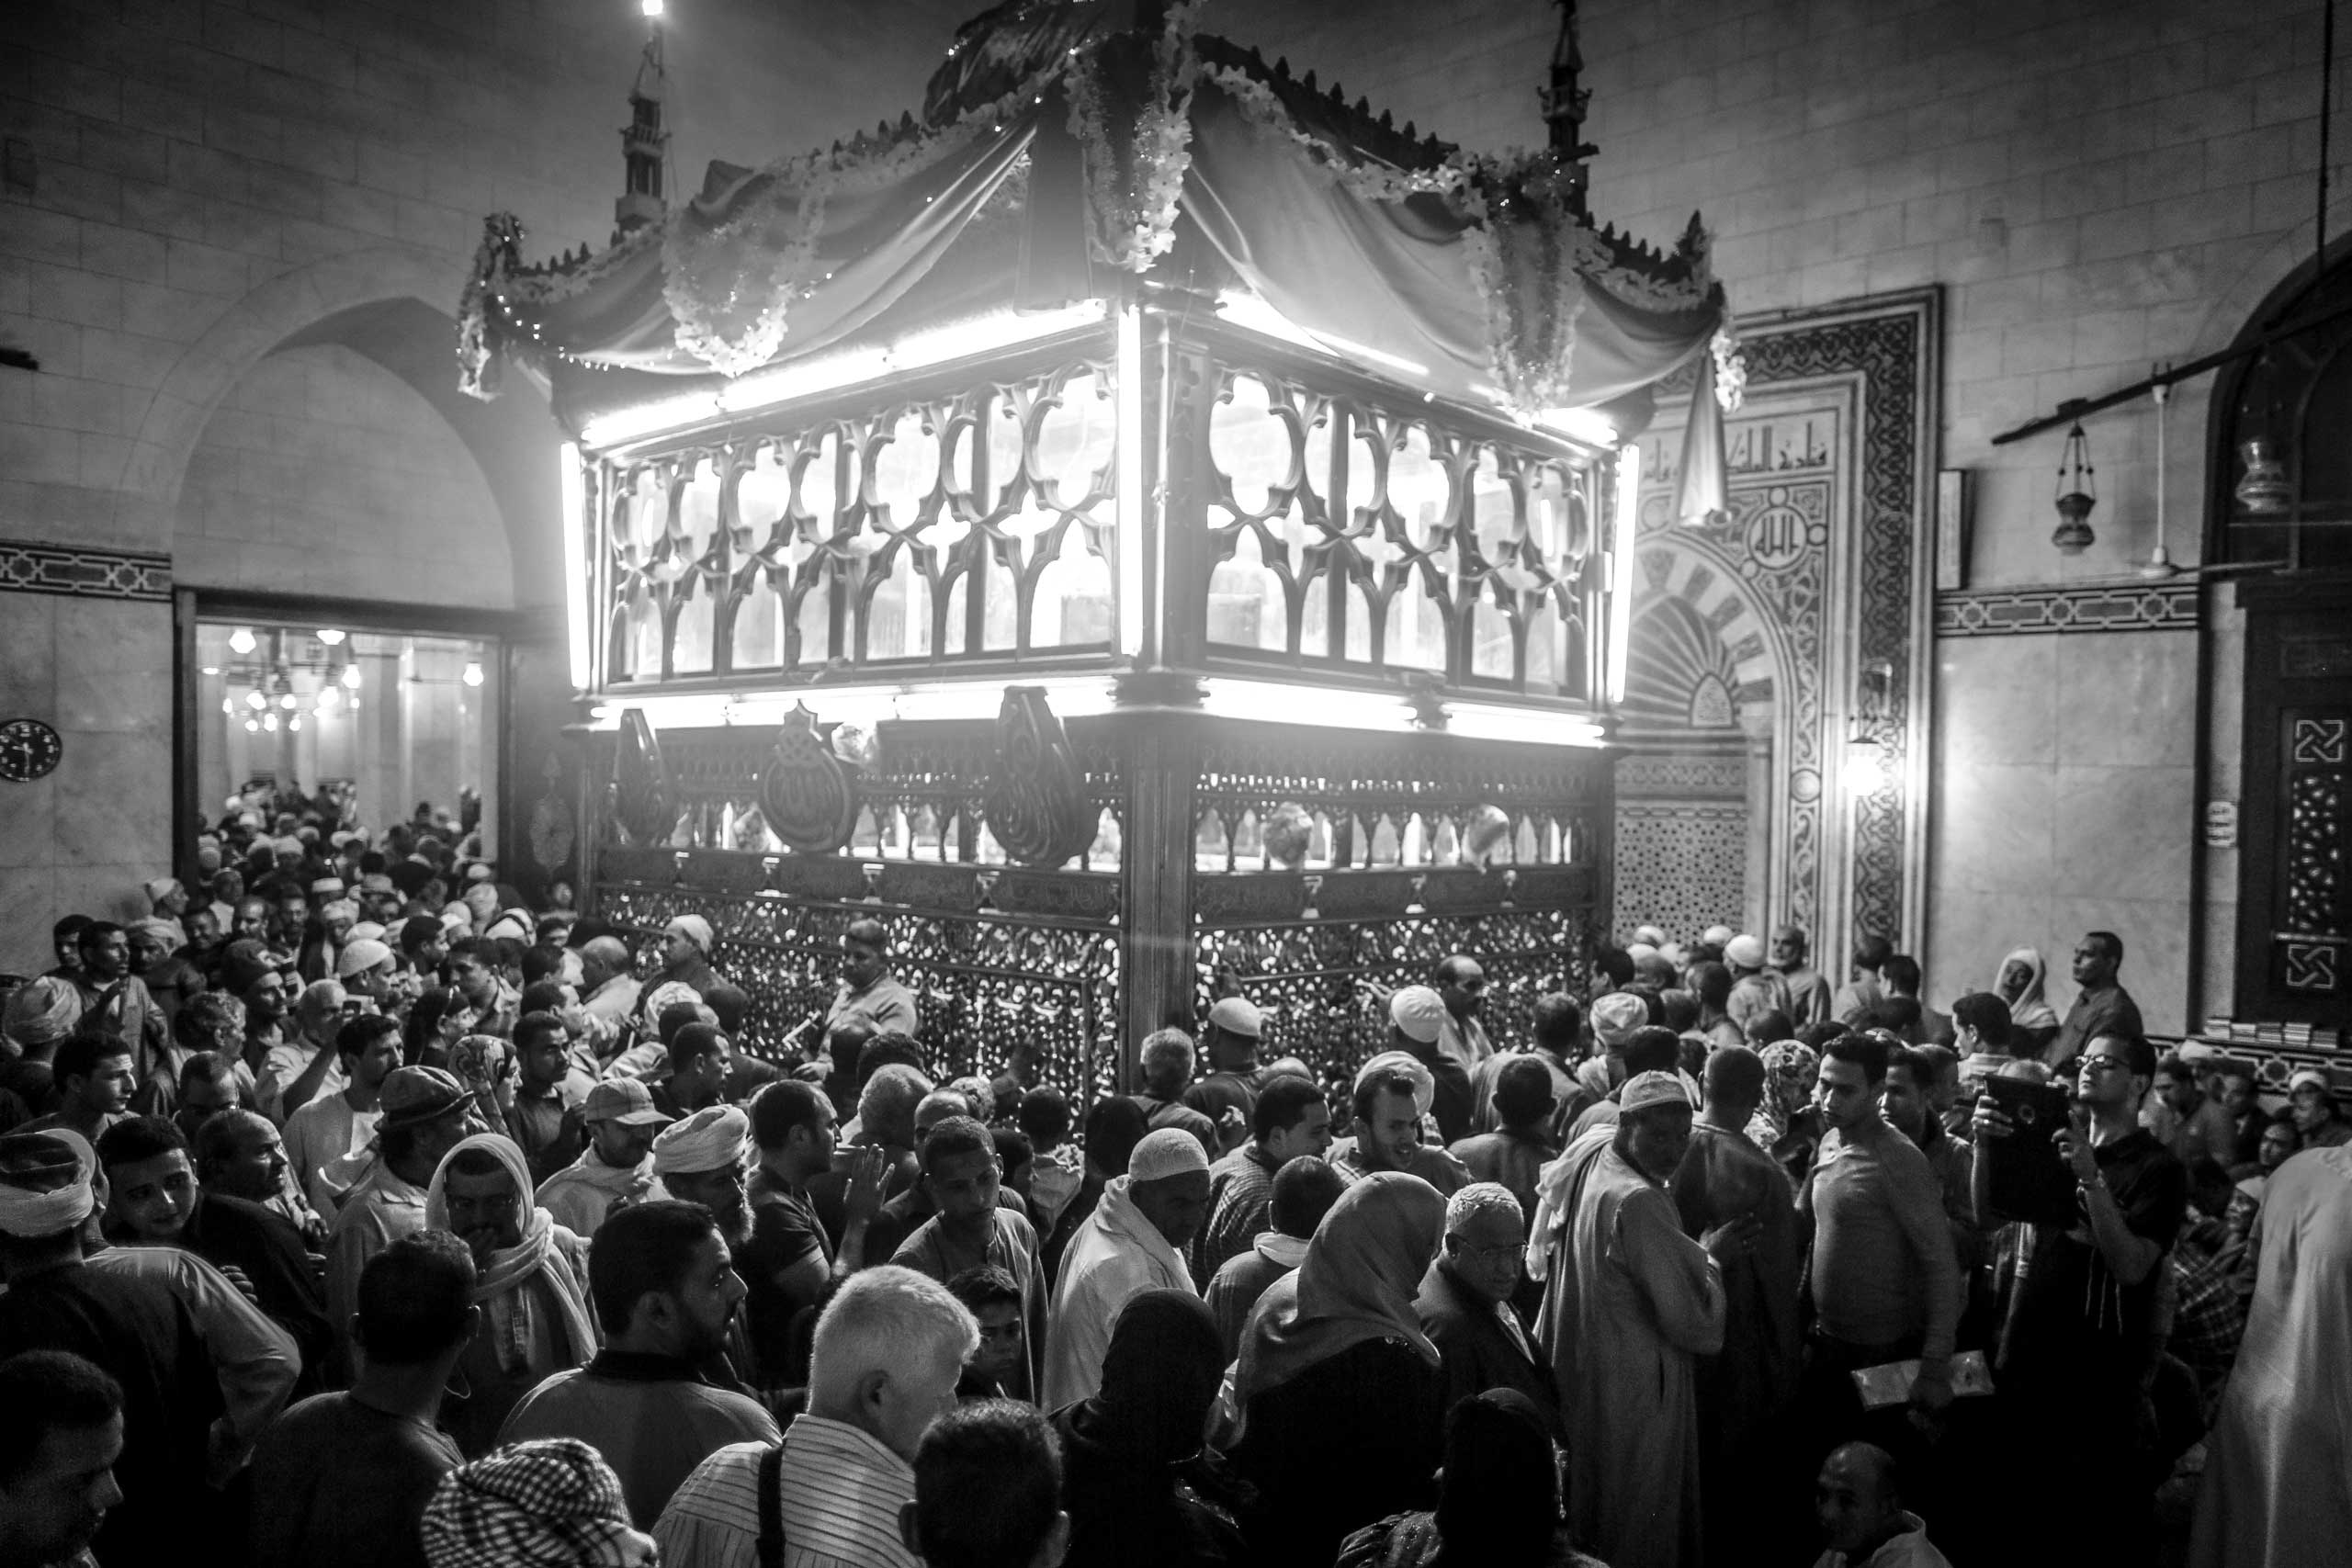 Worshippers circle the shrine of El-Sayed El-Badawi; this mawlid is considered Egypt's most famous. Tanta, Egypt. Oct. 16, 2014.